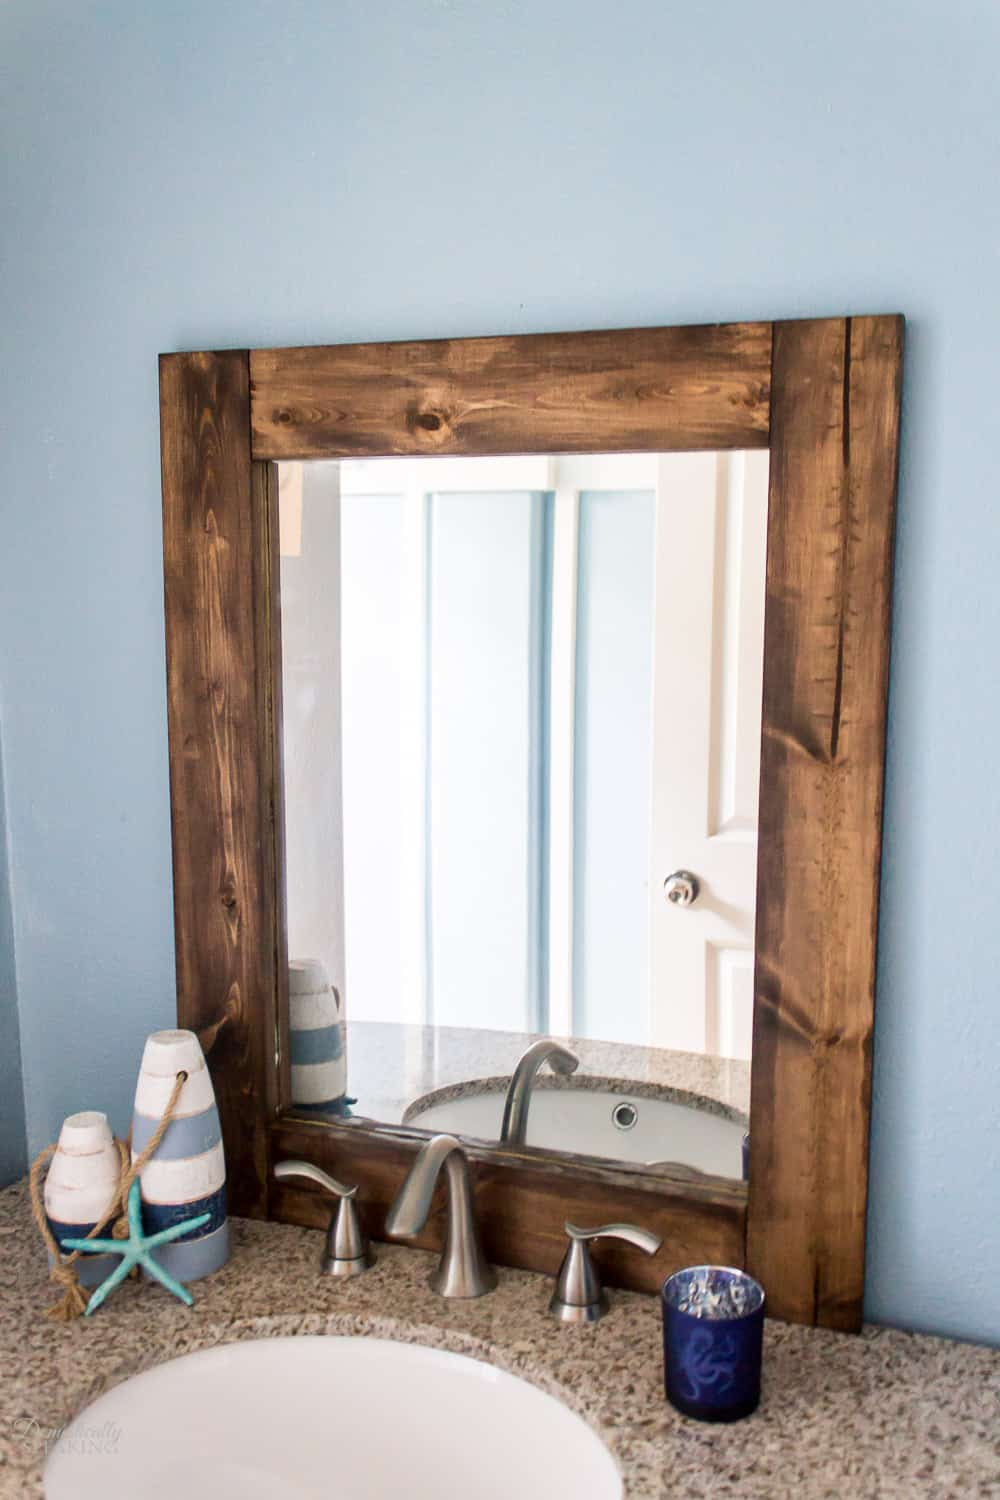 DIY Rustic Bathroom Mirror from an ornate thrift store mirror. Learn how to remove the glass and create a chunky wood framed mirror.